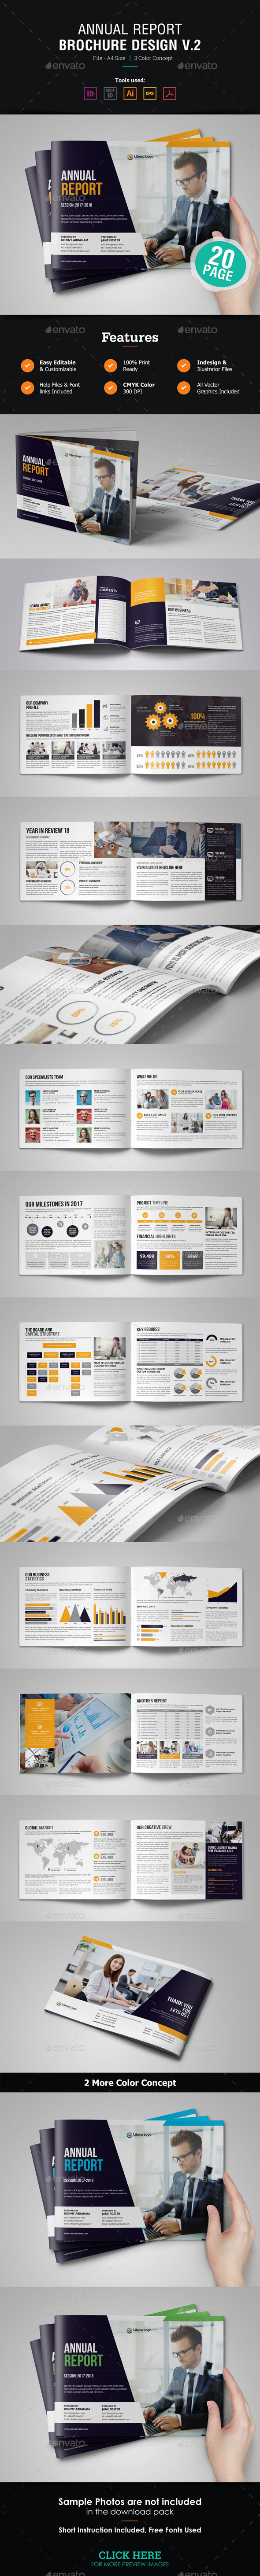 GraphicRiver Annual Report Design v2 21160976